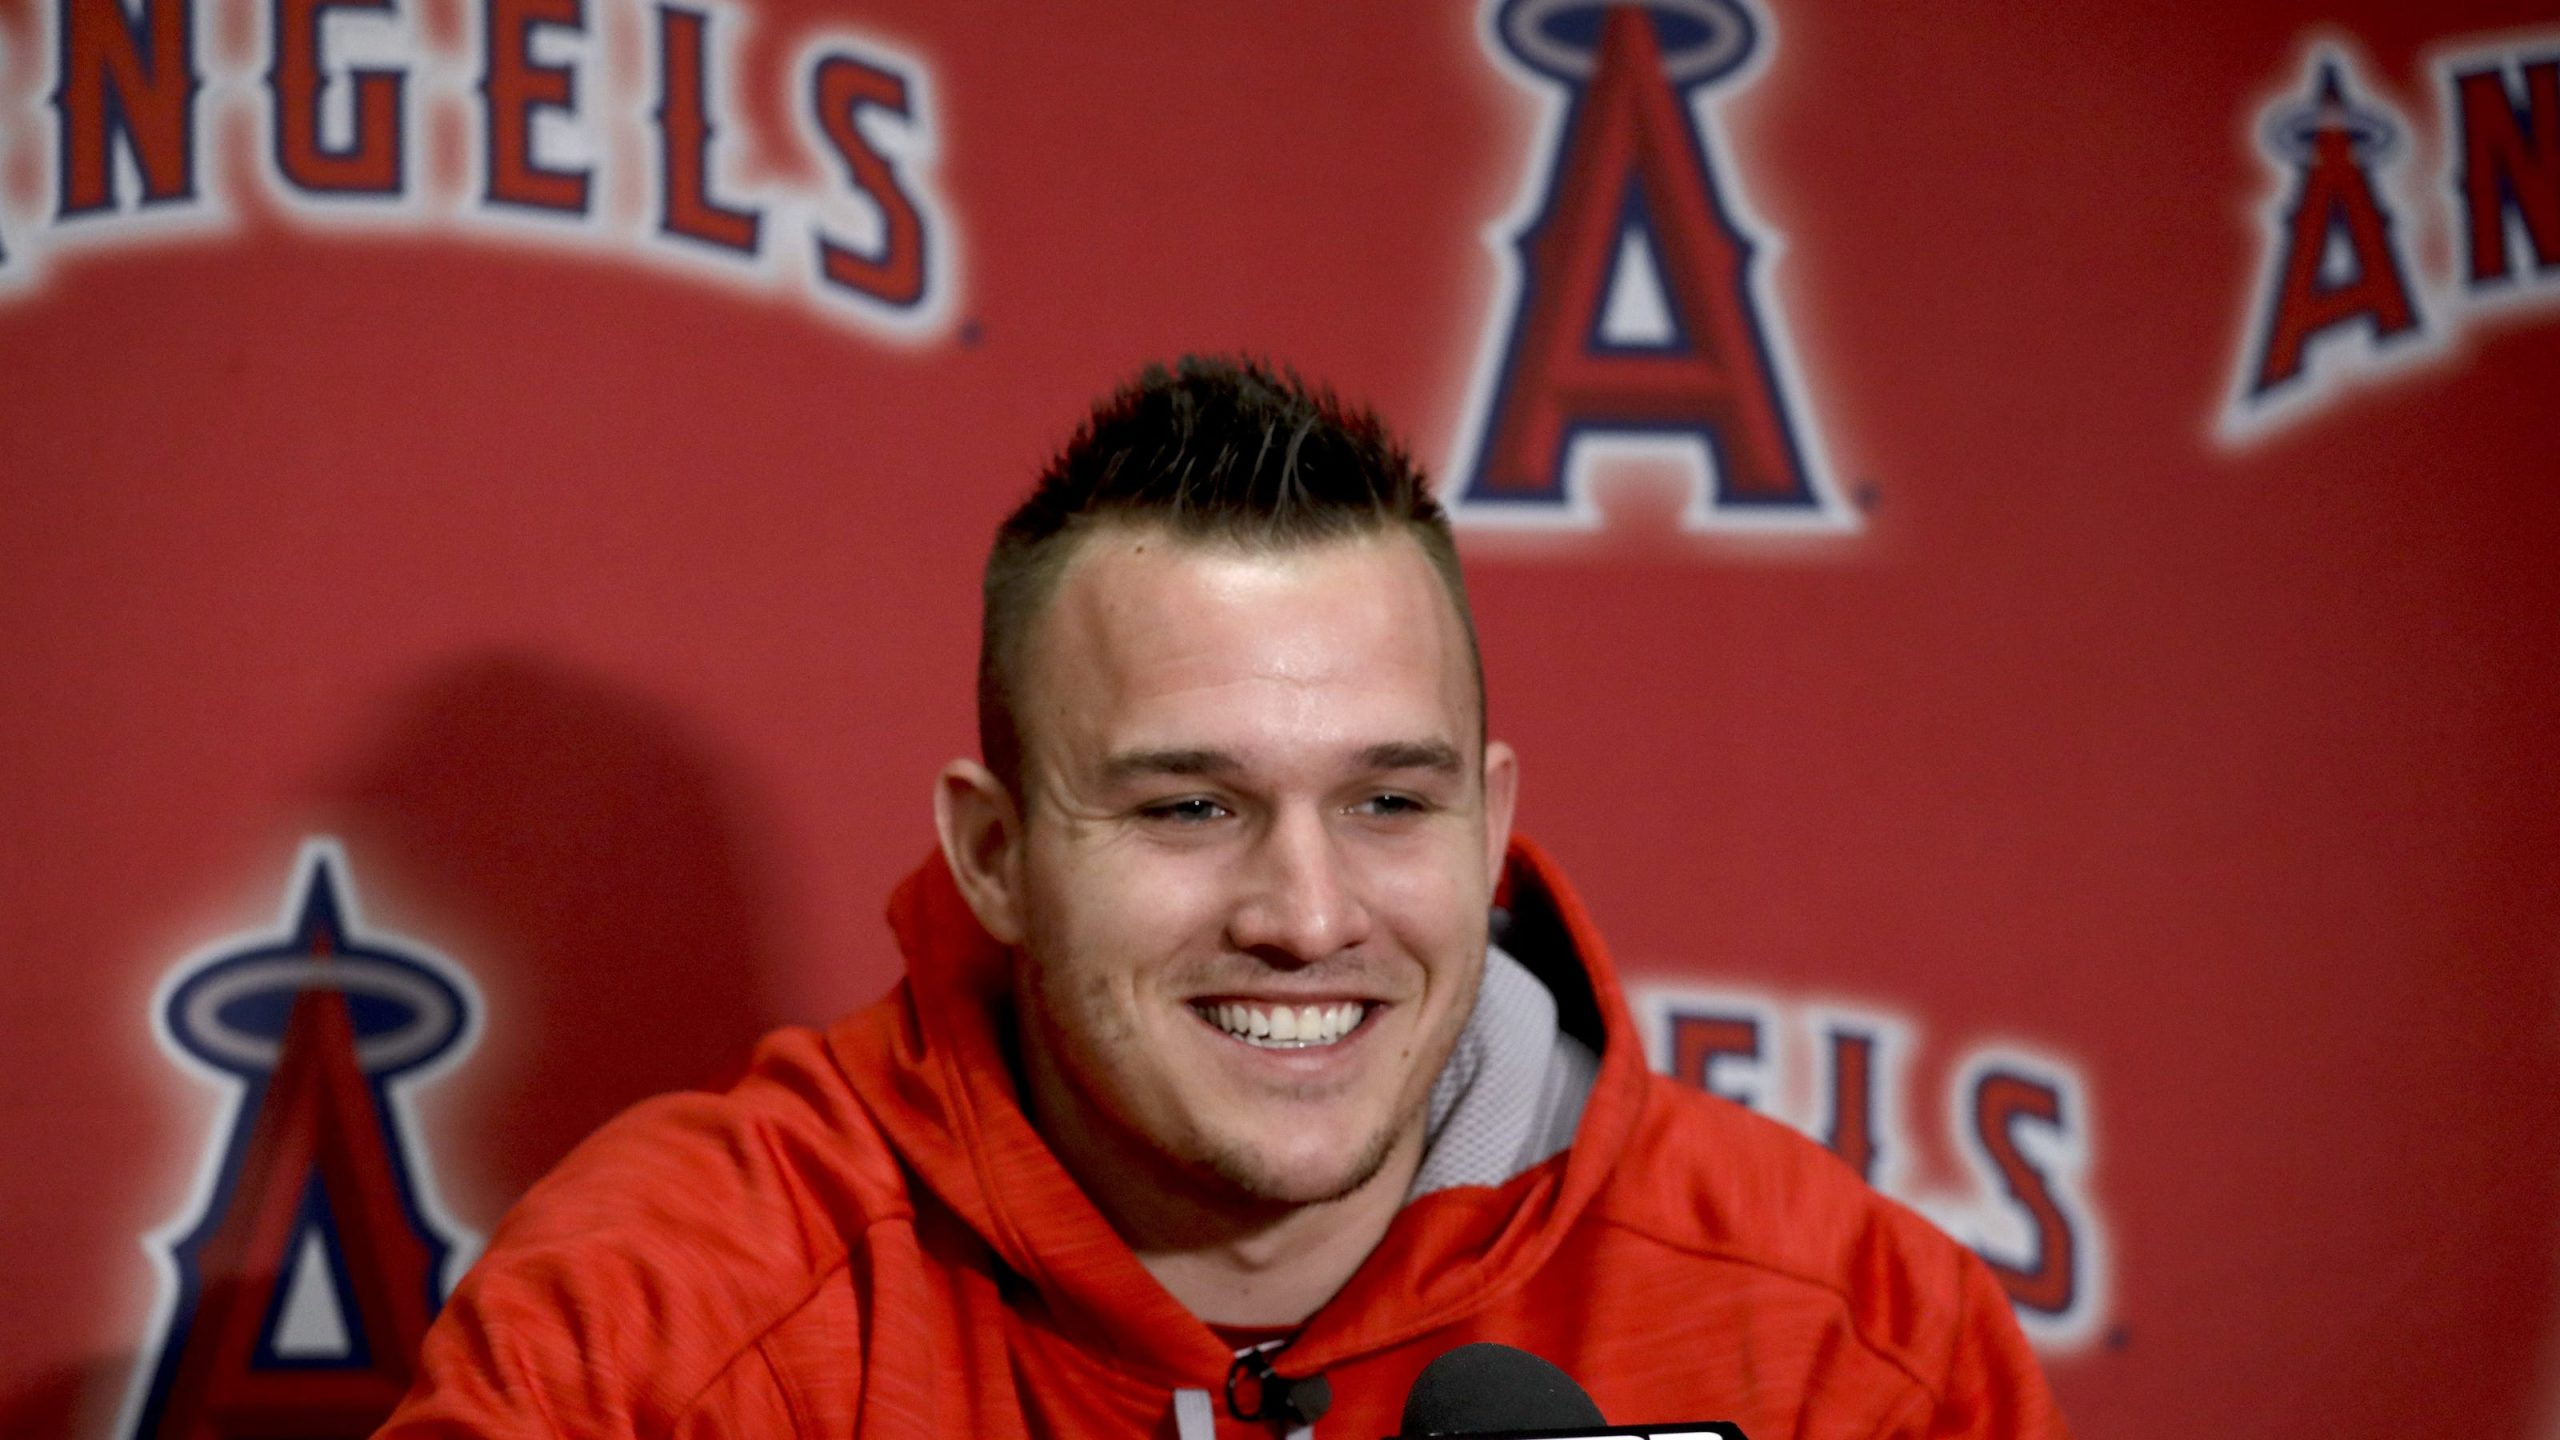 Mike Trout New Haircut 2020 Hairstyle Name